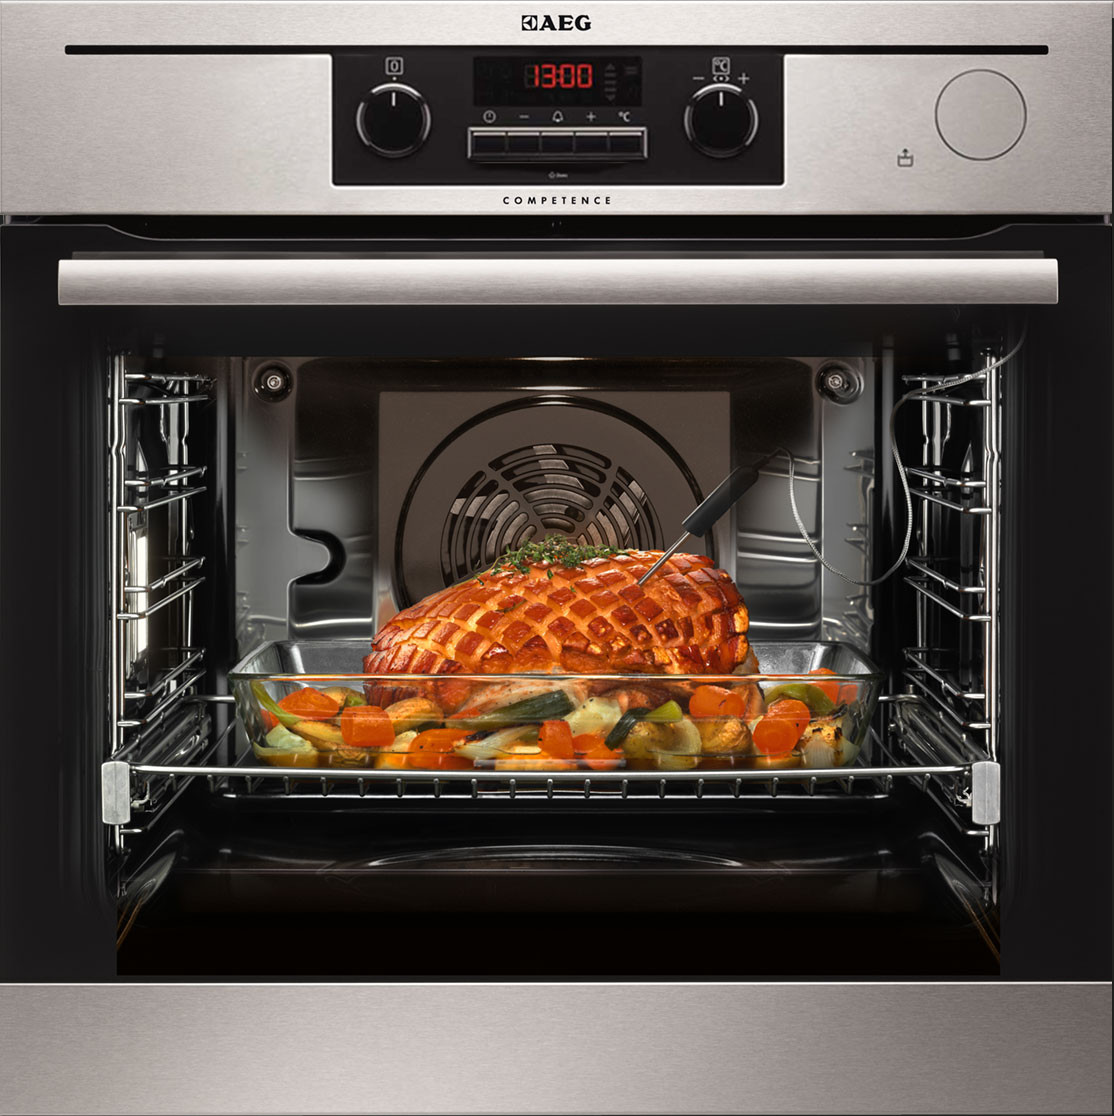 Oven with steam function